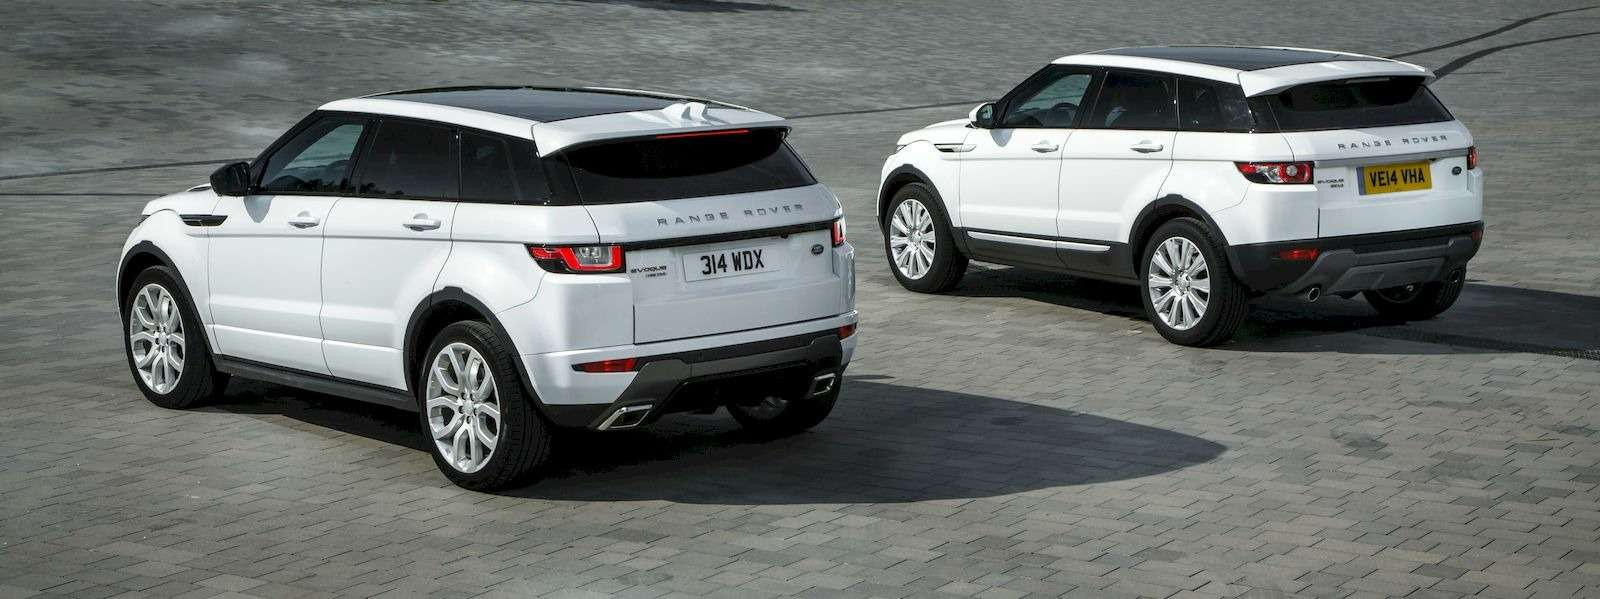 Evoque_15+16MY_002_result